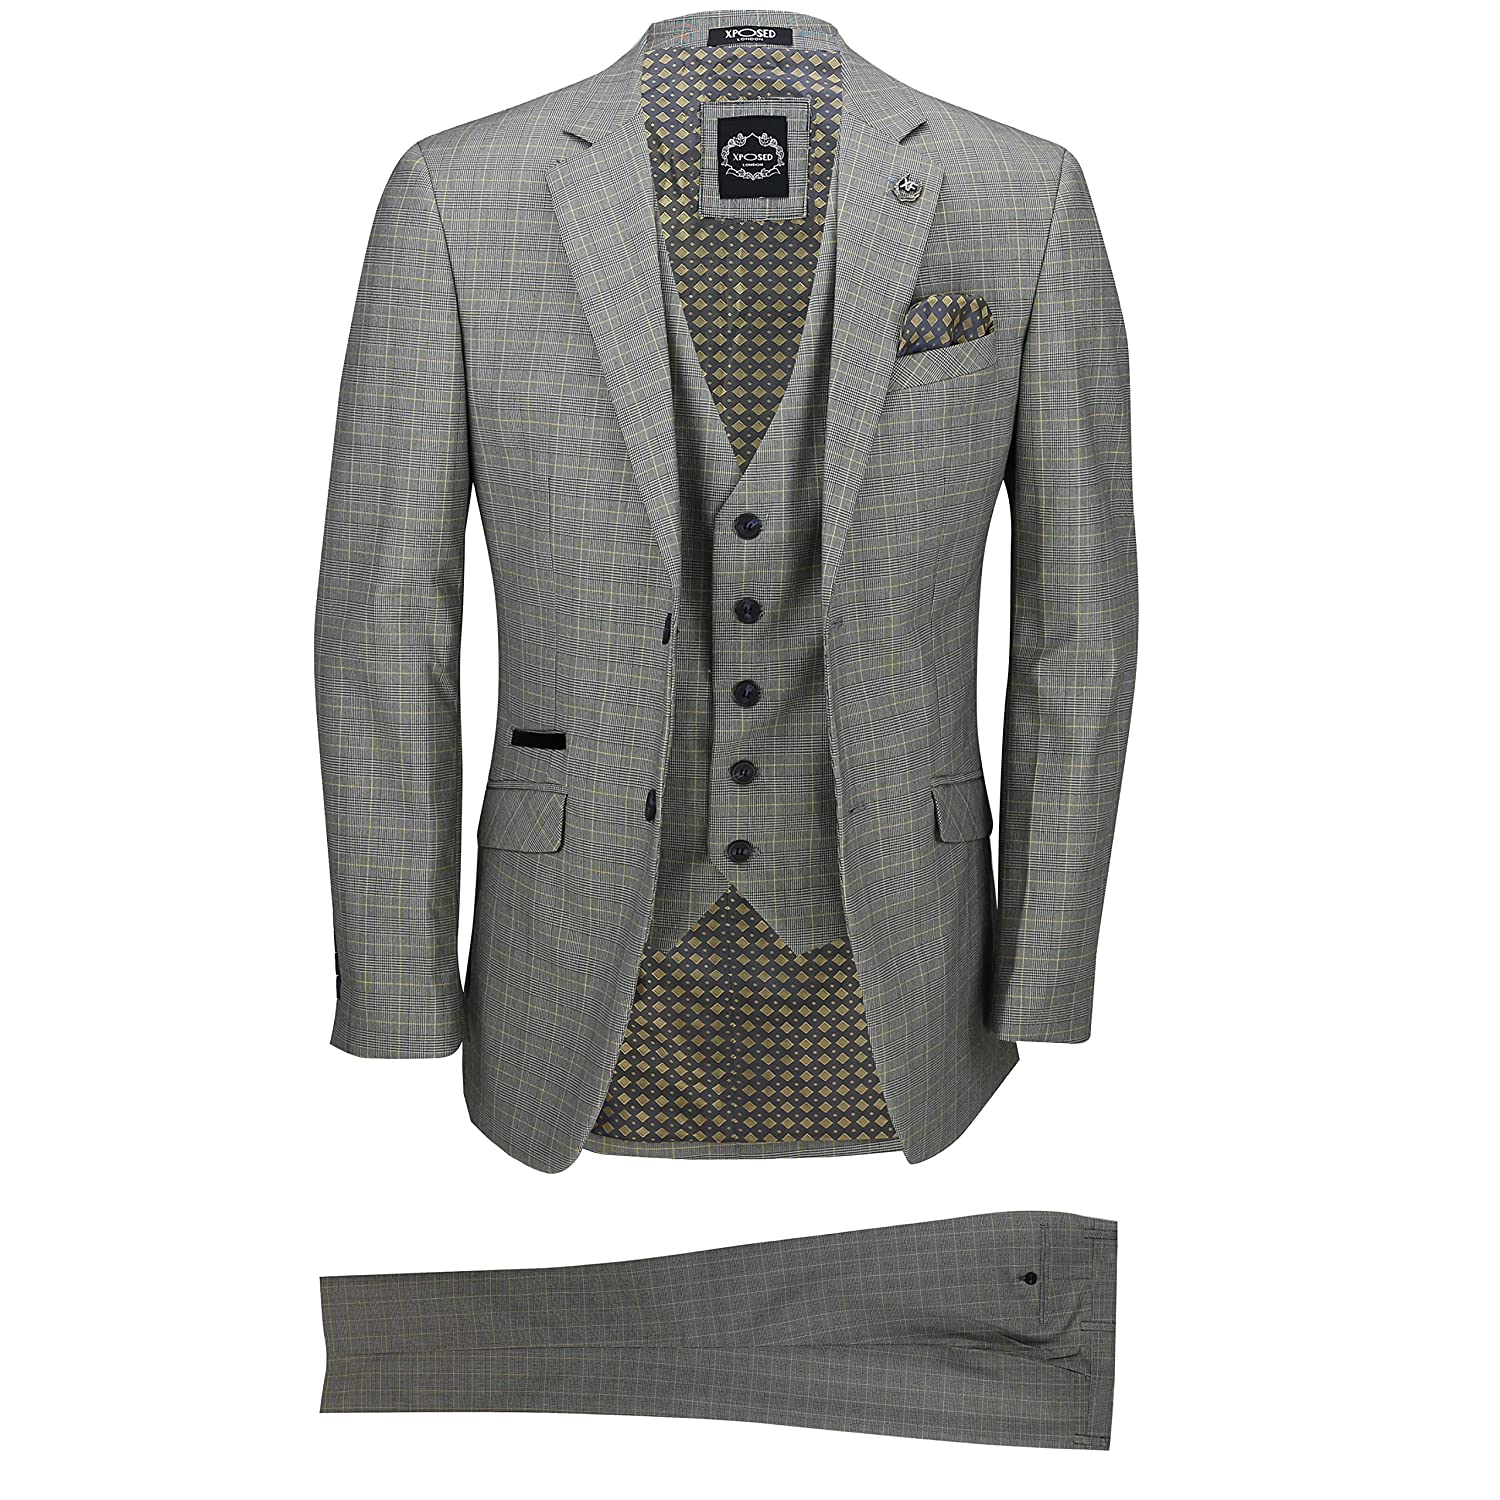 Xposed Mens 3 Piece Tailored Fit Yellow Grey Prince of Wales Check Smart Formal Retro Vintage Suit